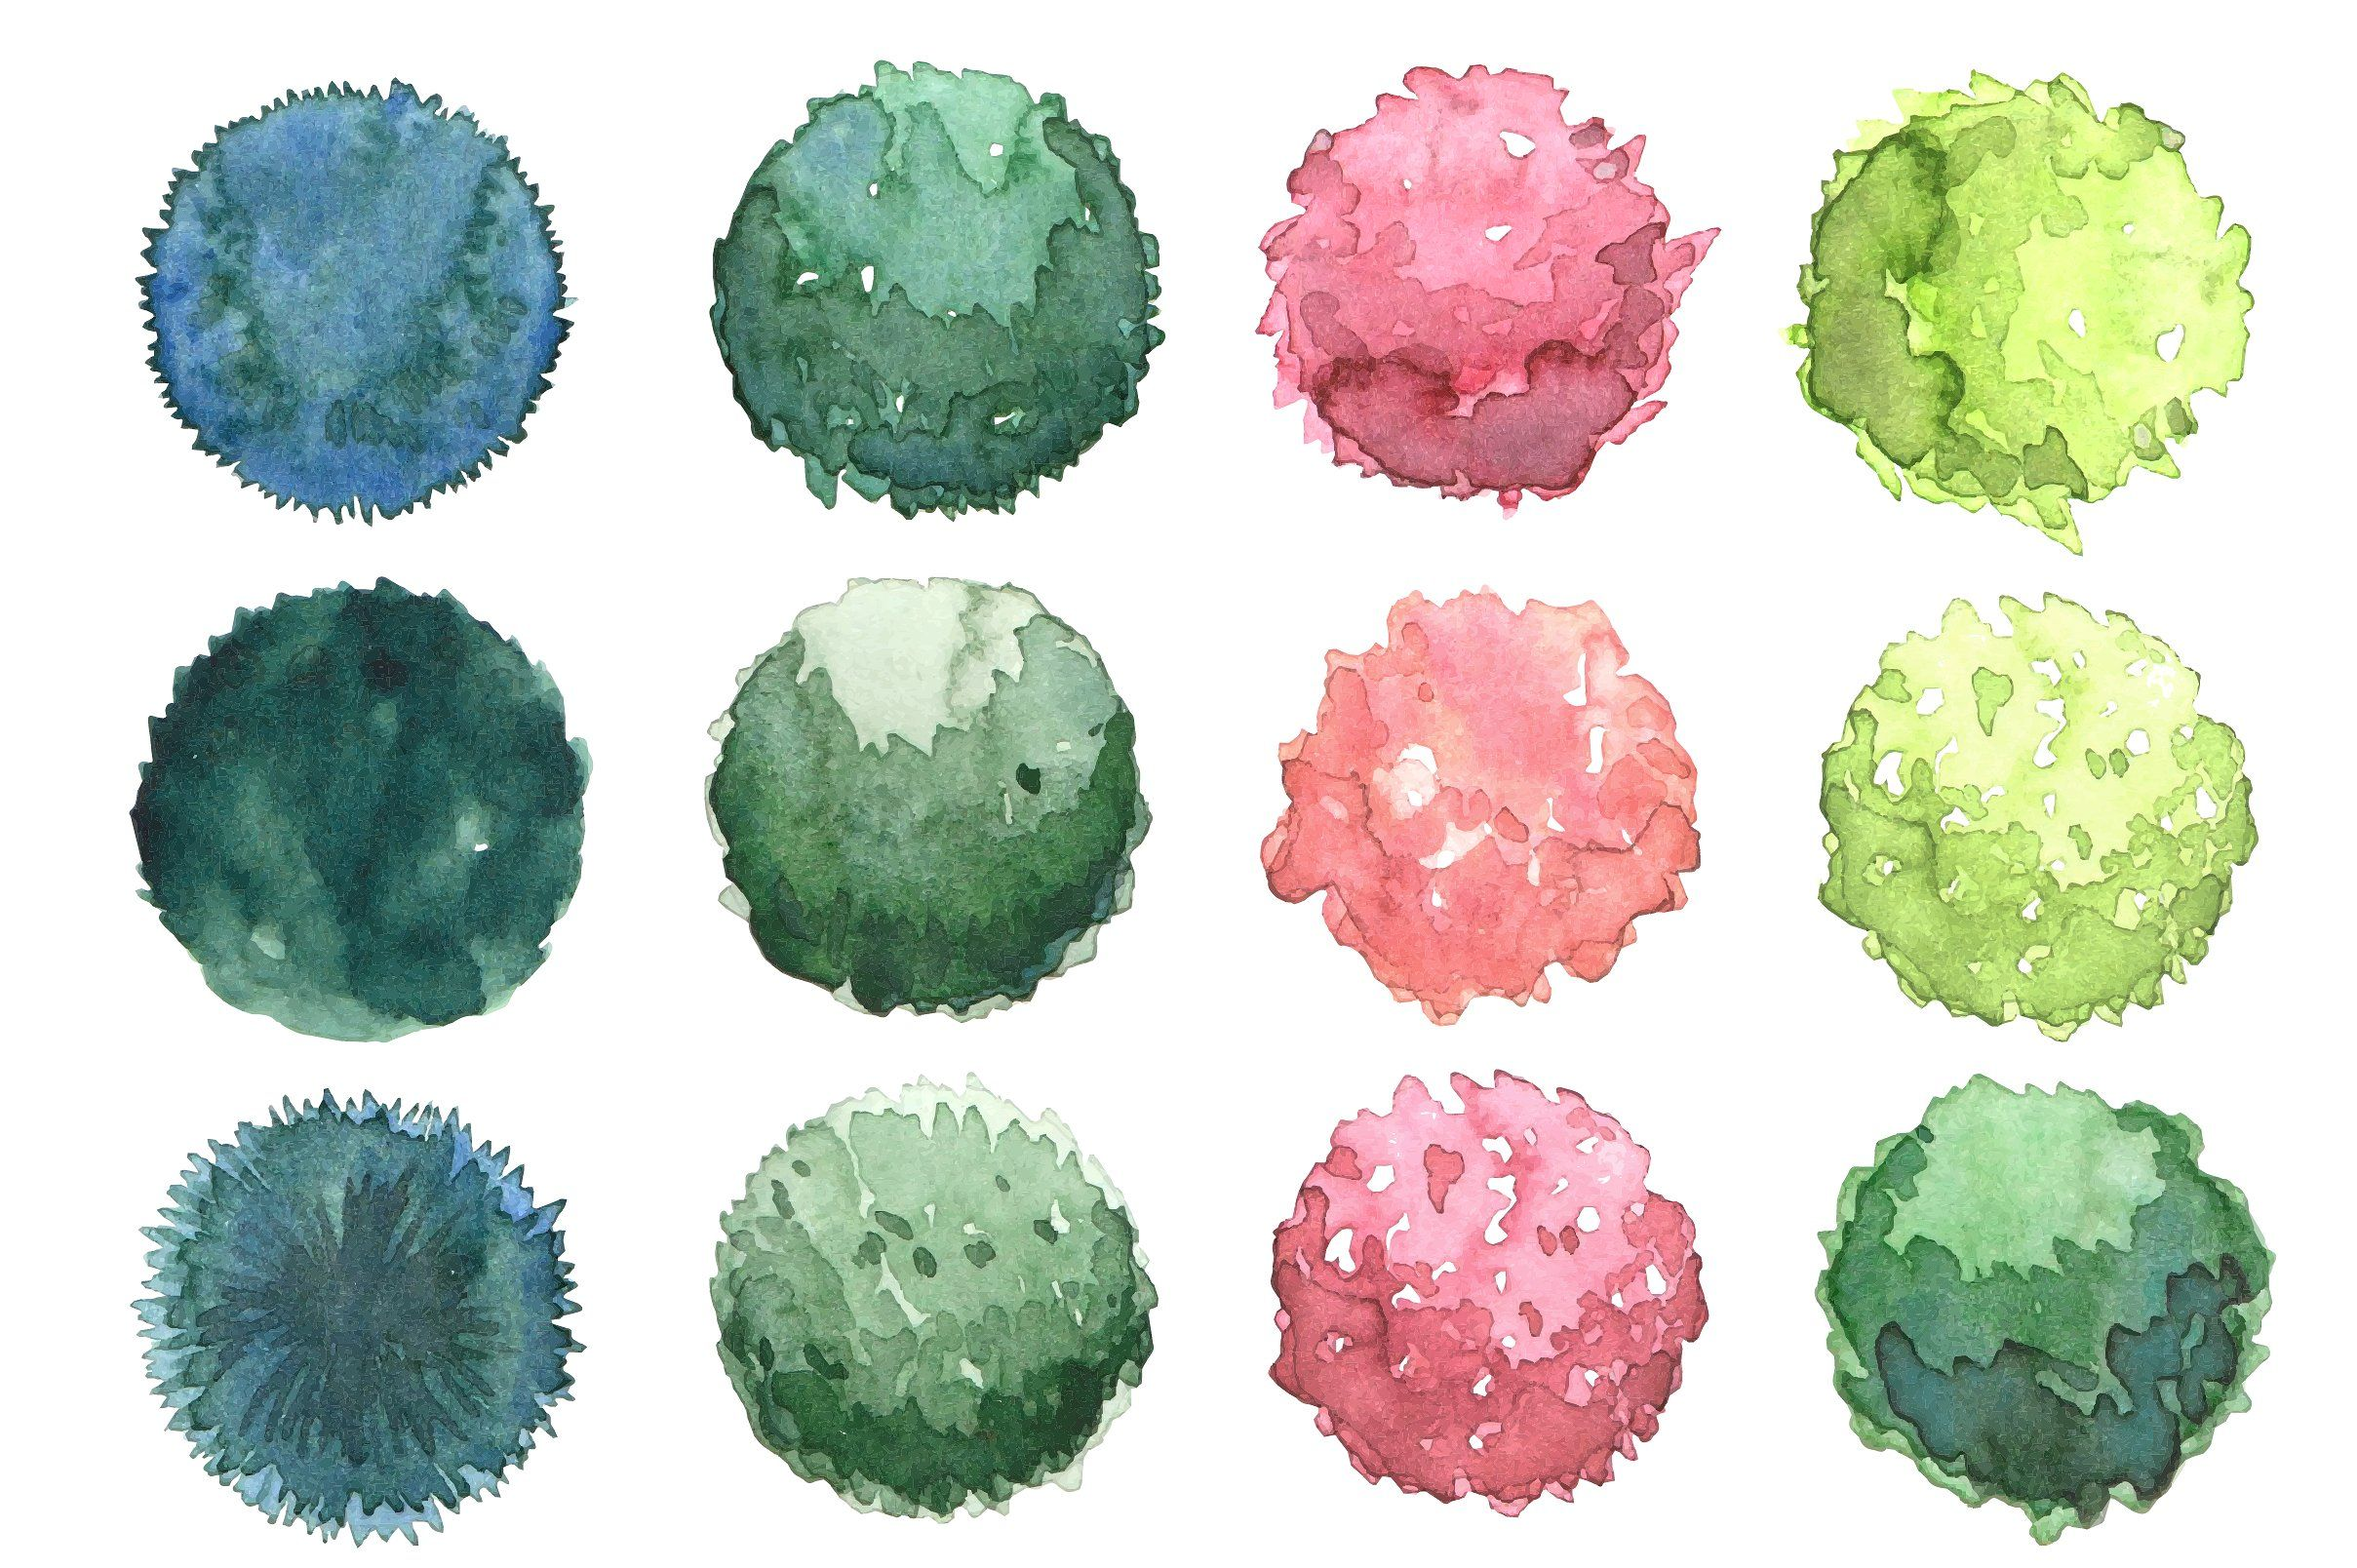 Watercolor Trees Set Top View Watercolor Trees Landscape Sketch Trees Top View